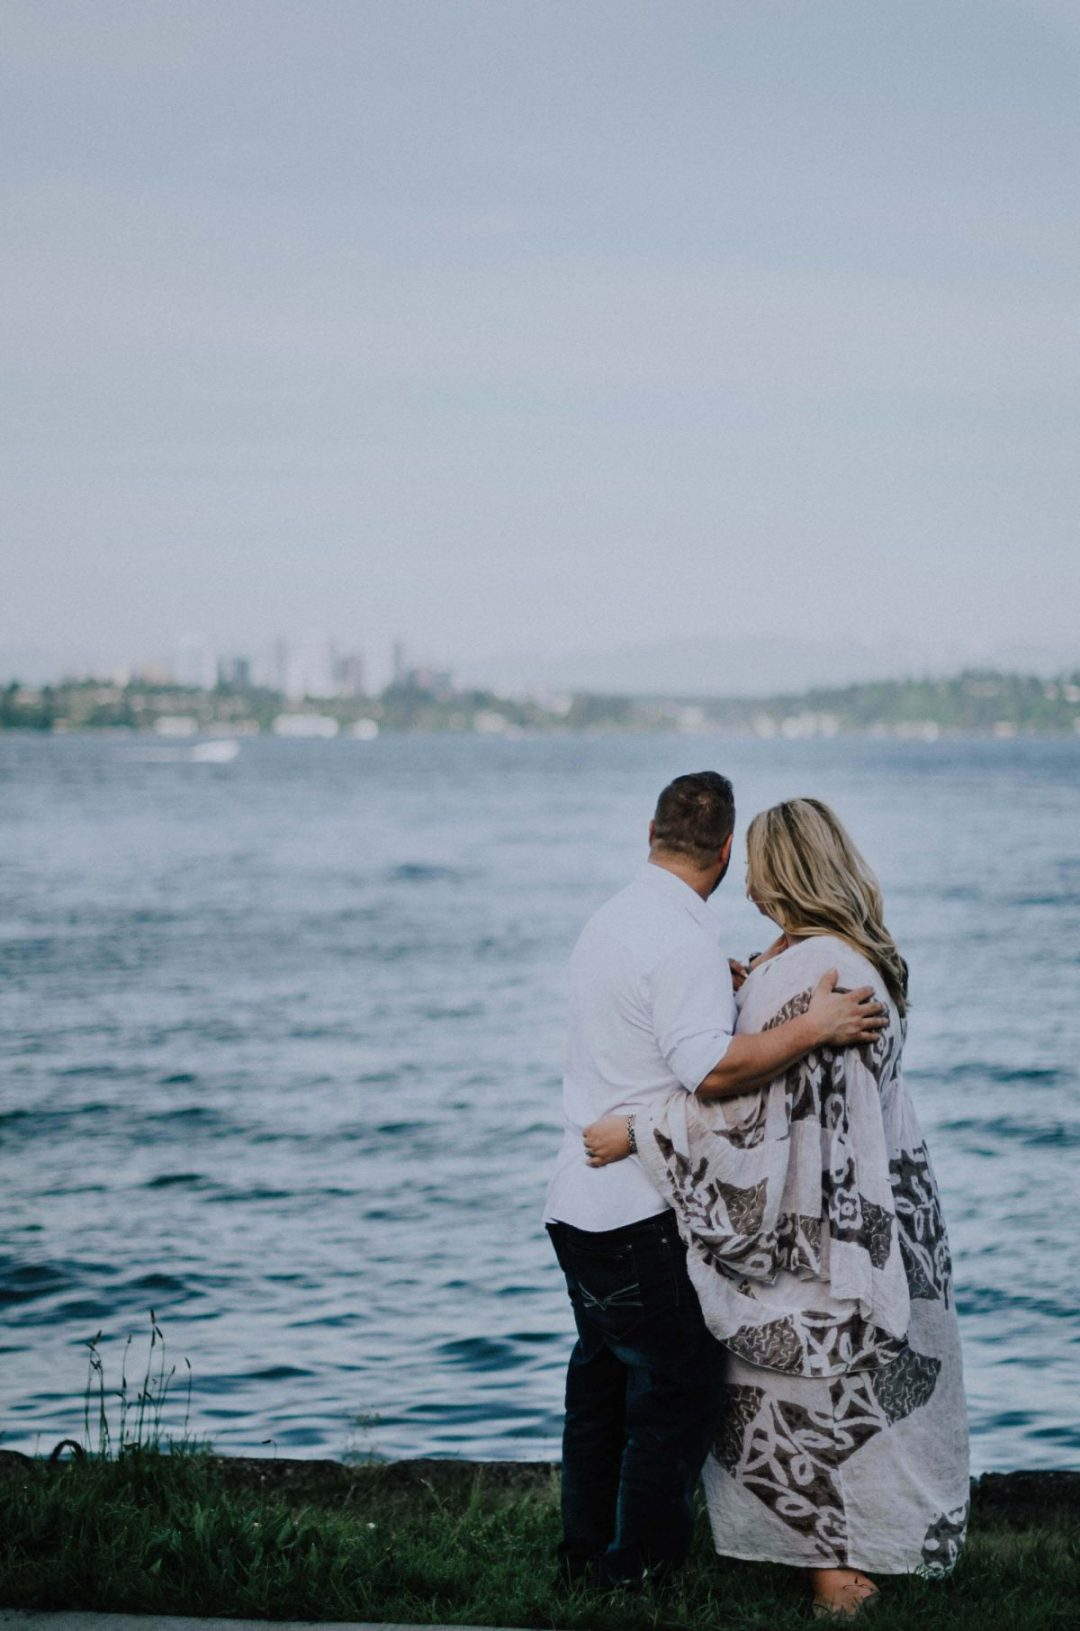 madison-park-seattle, madison-park-engagement, madison-park-engagement-photos, seattle-engagement-photographer, seattle-wedding-photographer, madison-park, lake-washington-engagement,